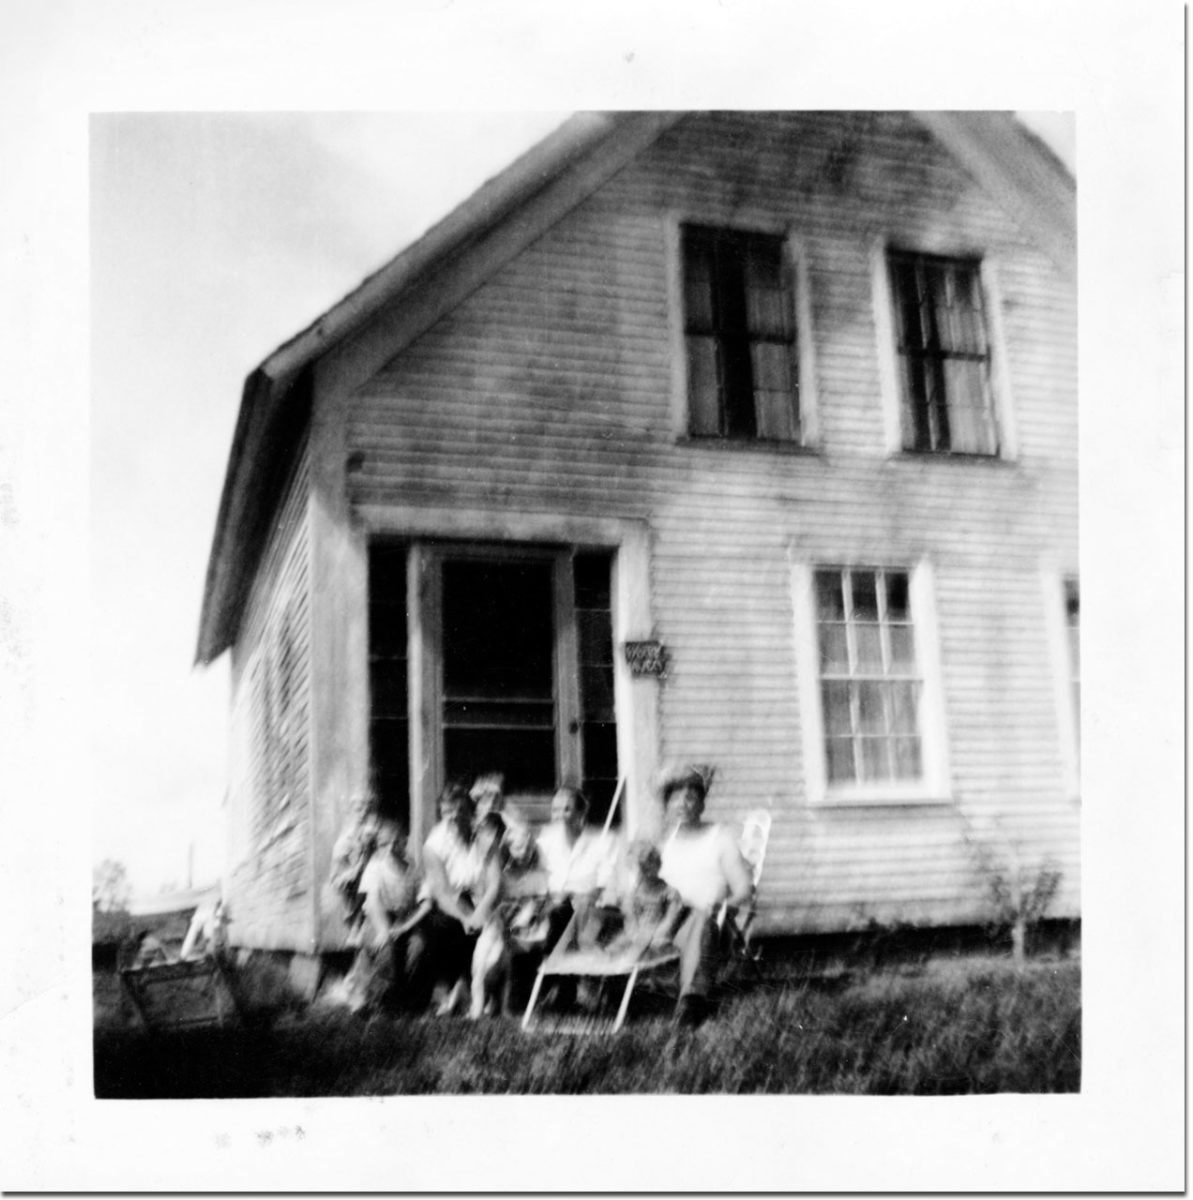 A place I've been. East Lempster NH in the early 1960s.